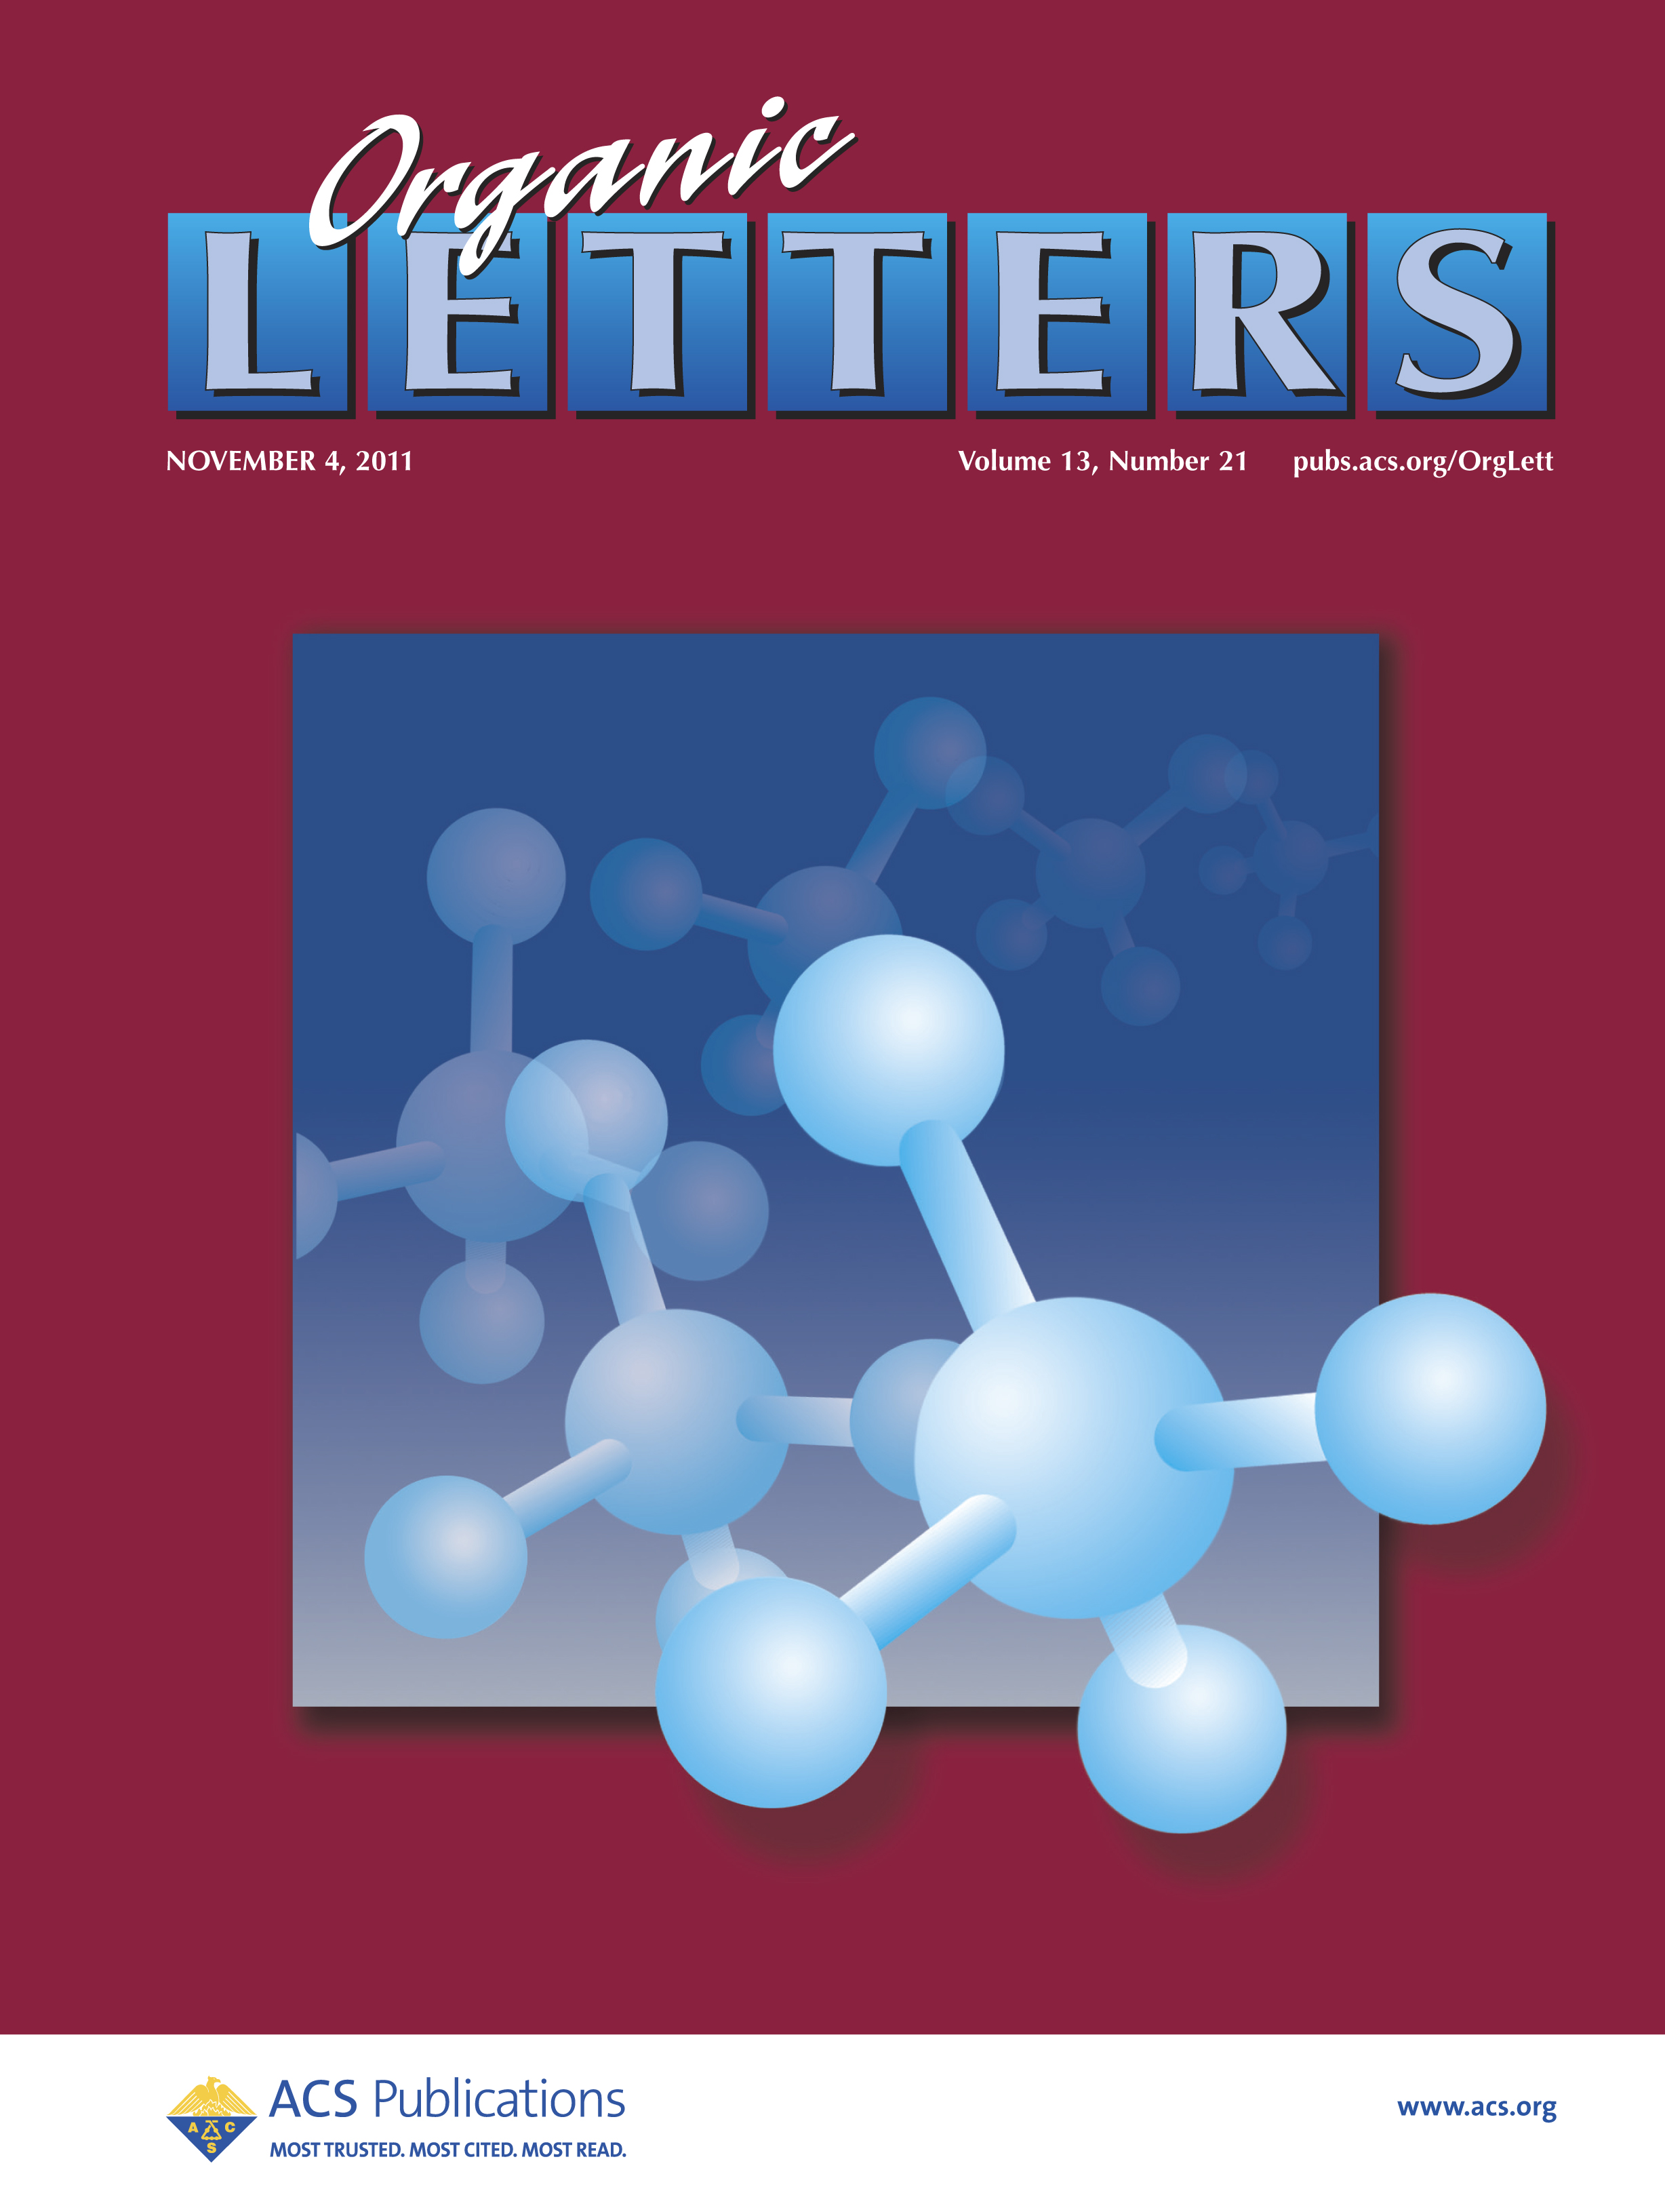 Journal Cover - Title in white lettering and bold purple lettering in blue boxes above an illustration of connected molecules against a magenta background.